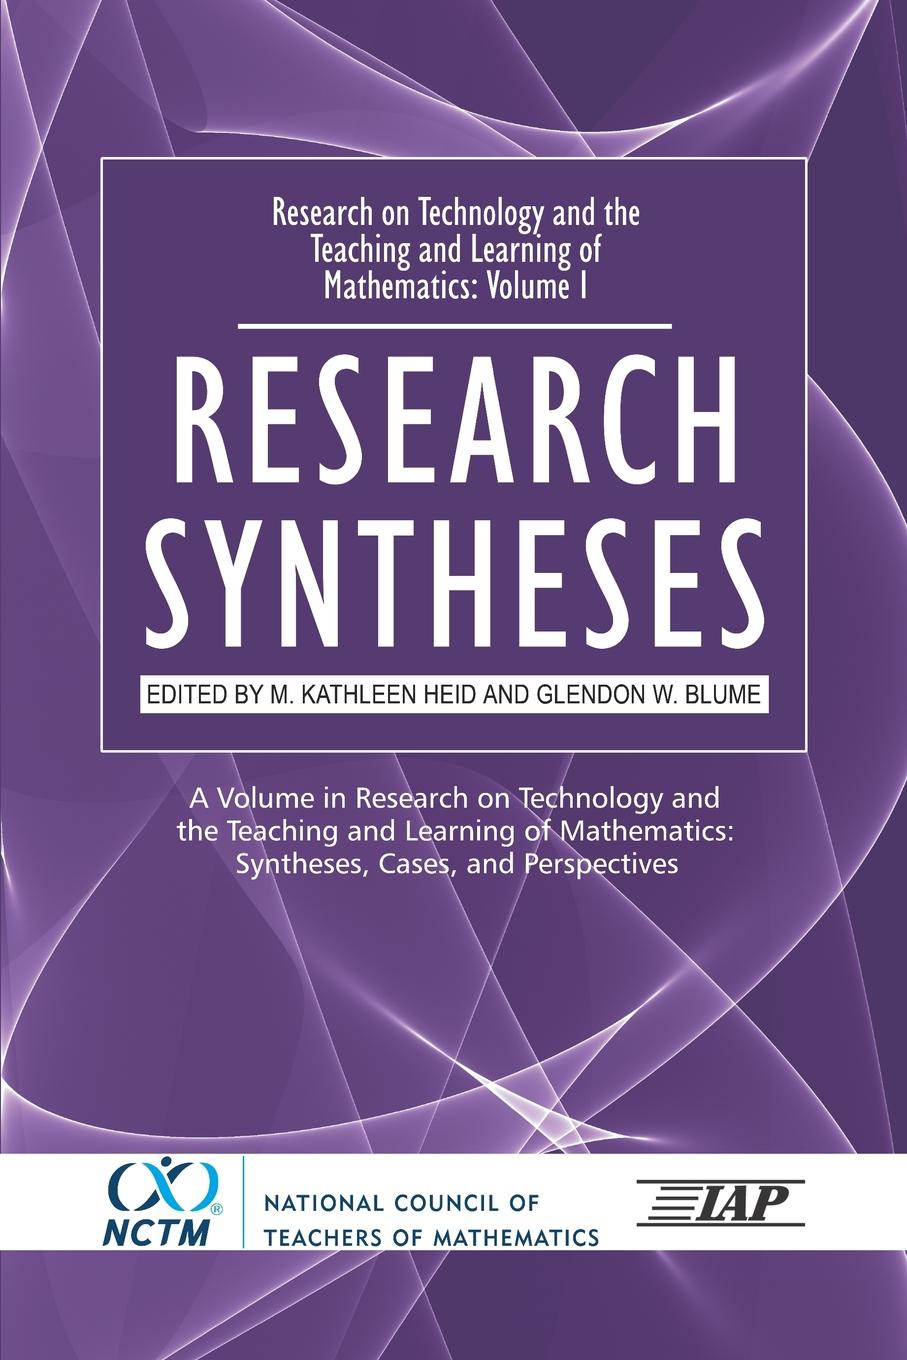 Research on Technology and the Teaching and Learning of Mathematics. Vol. 1, Research Syntheses (PB) цена